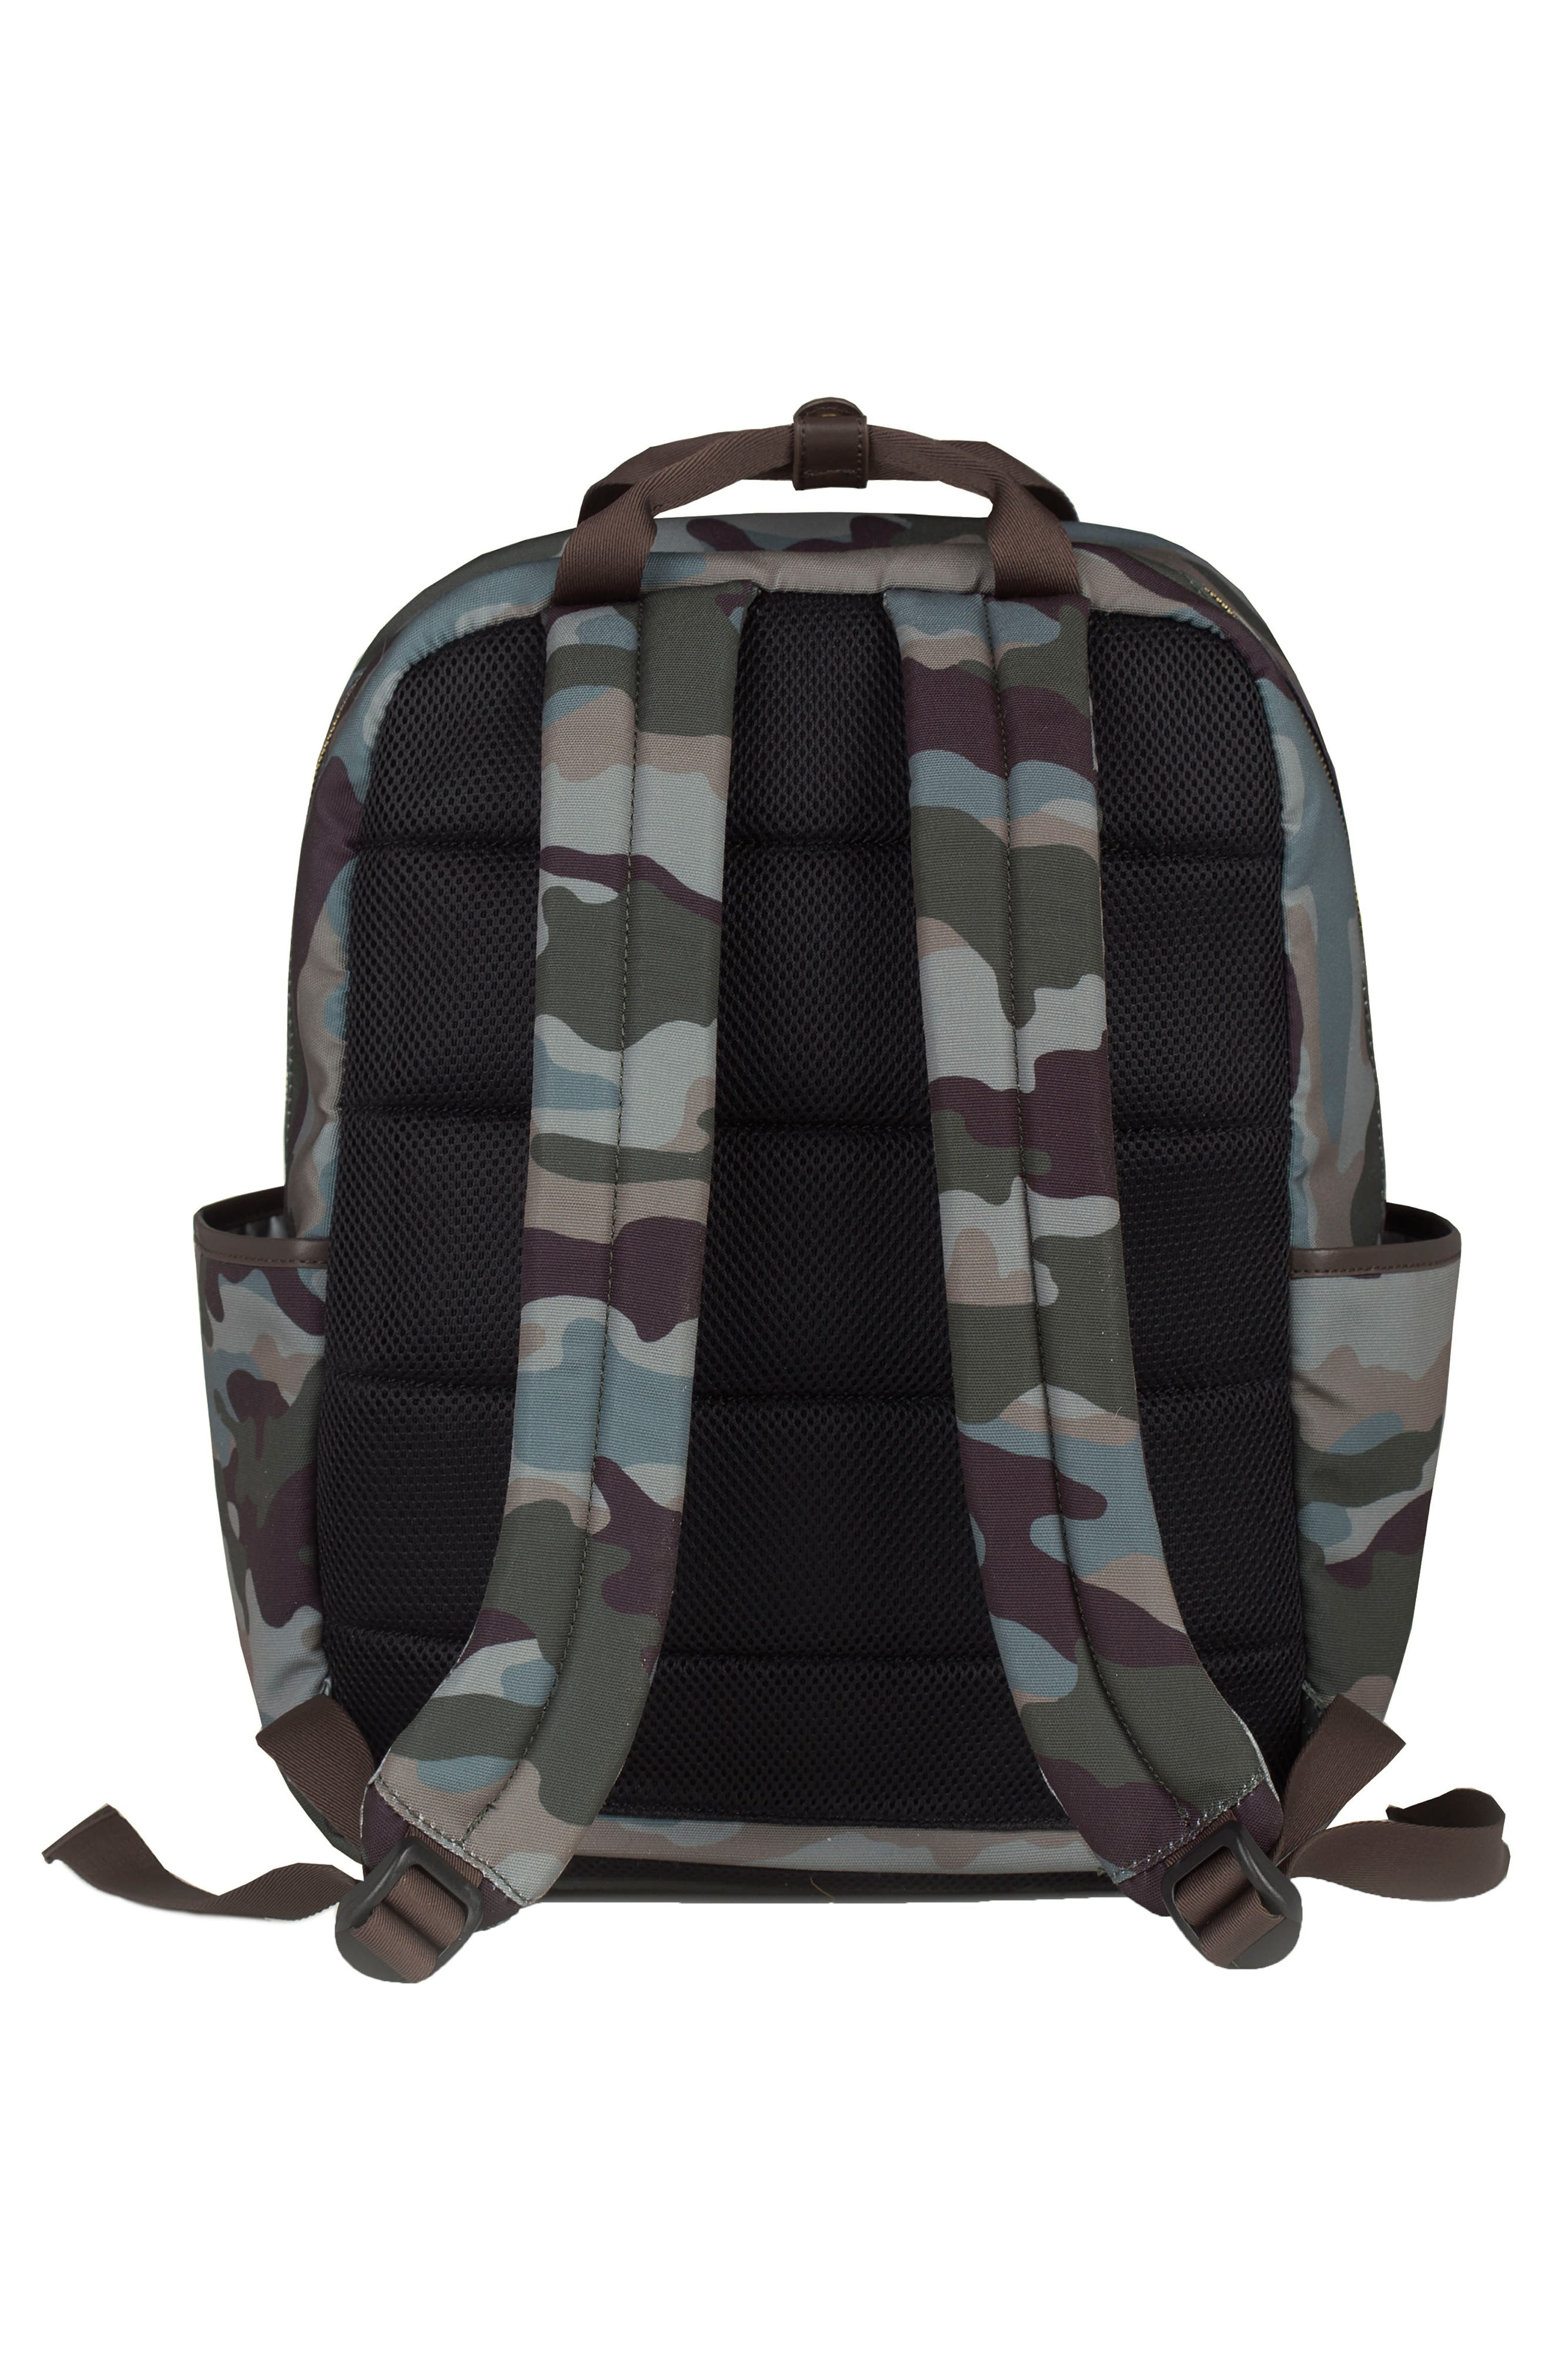 'Courage' Unisex Backpack Diaper Bag,                             Alternate thumbnail 2, color,                             Camouflage Print